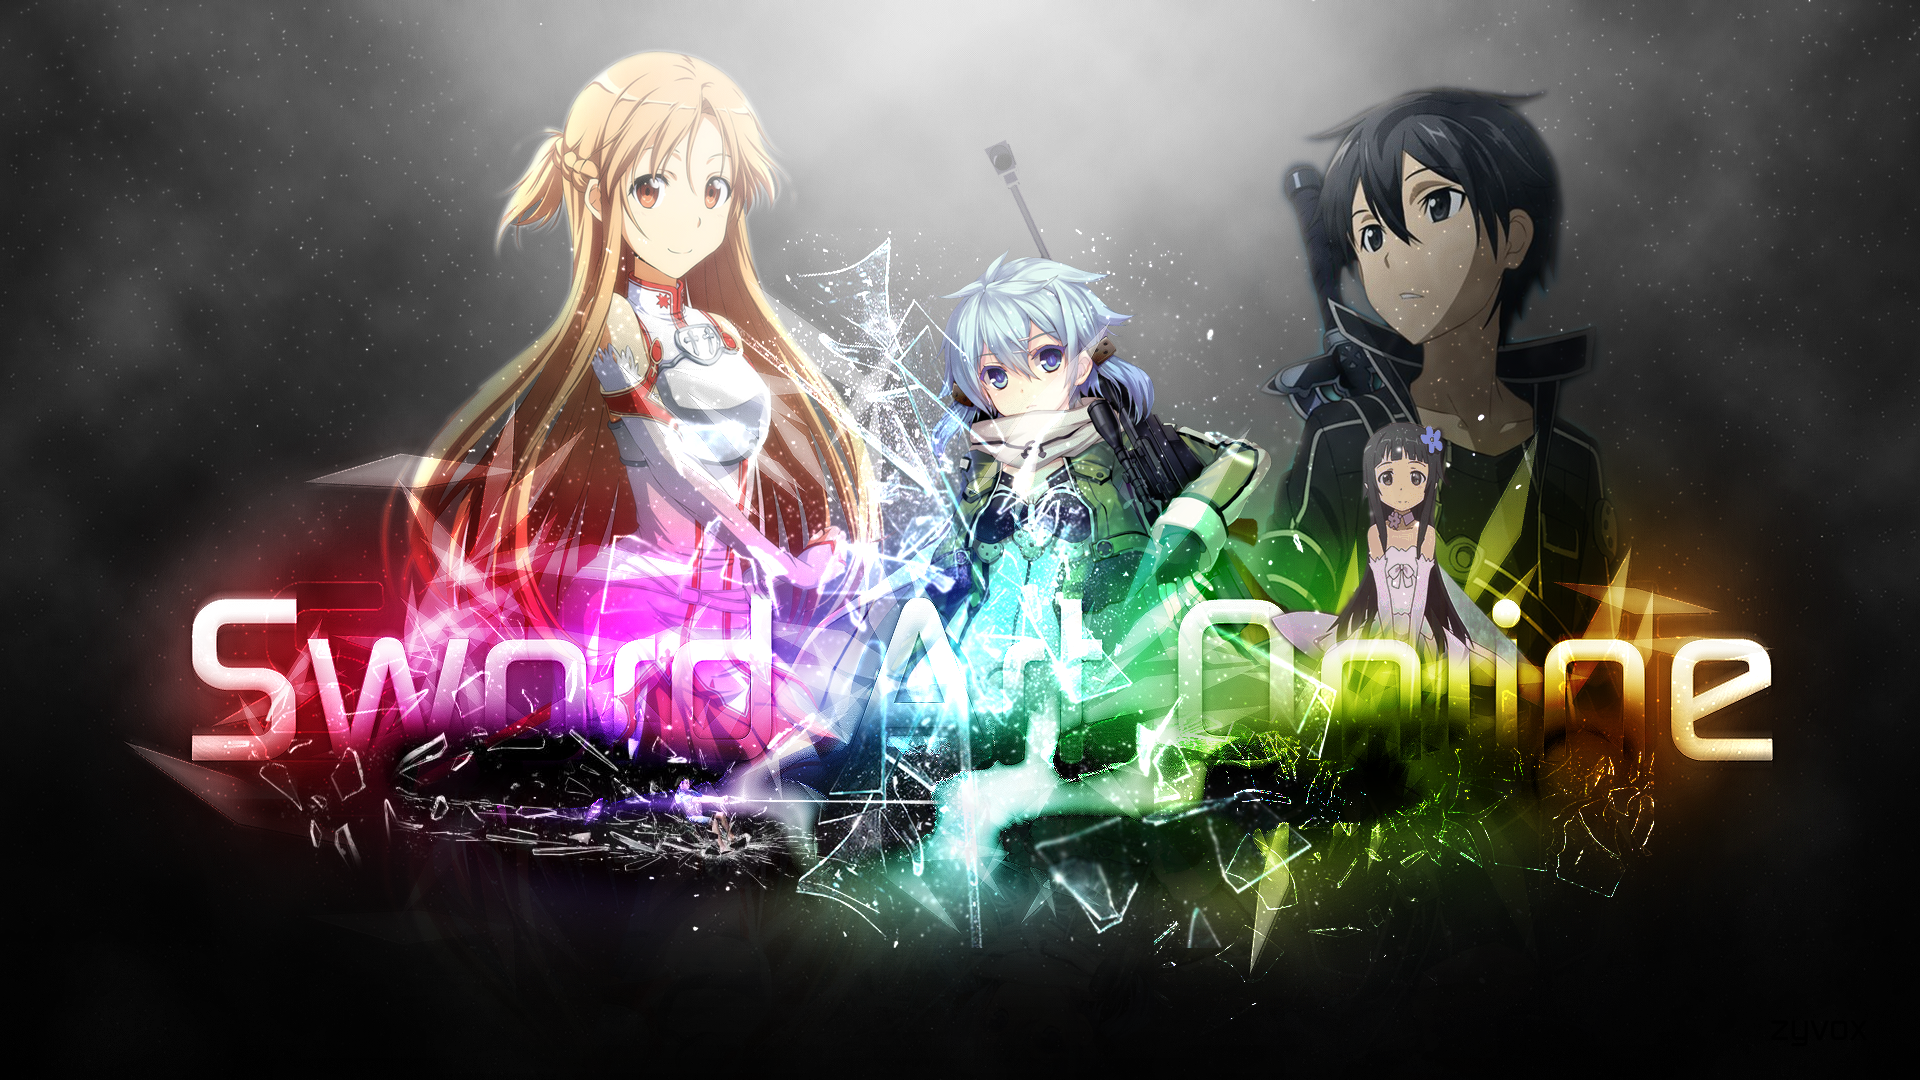 HD-Background-ID-1920x1080-Anime-Sword-Art-Online-wallpaper-wp3606697